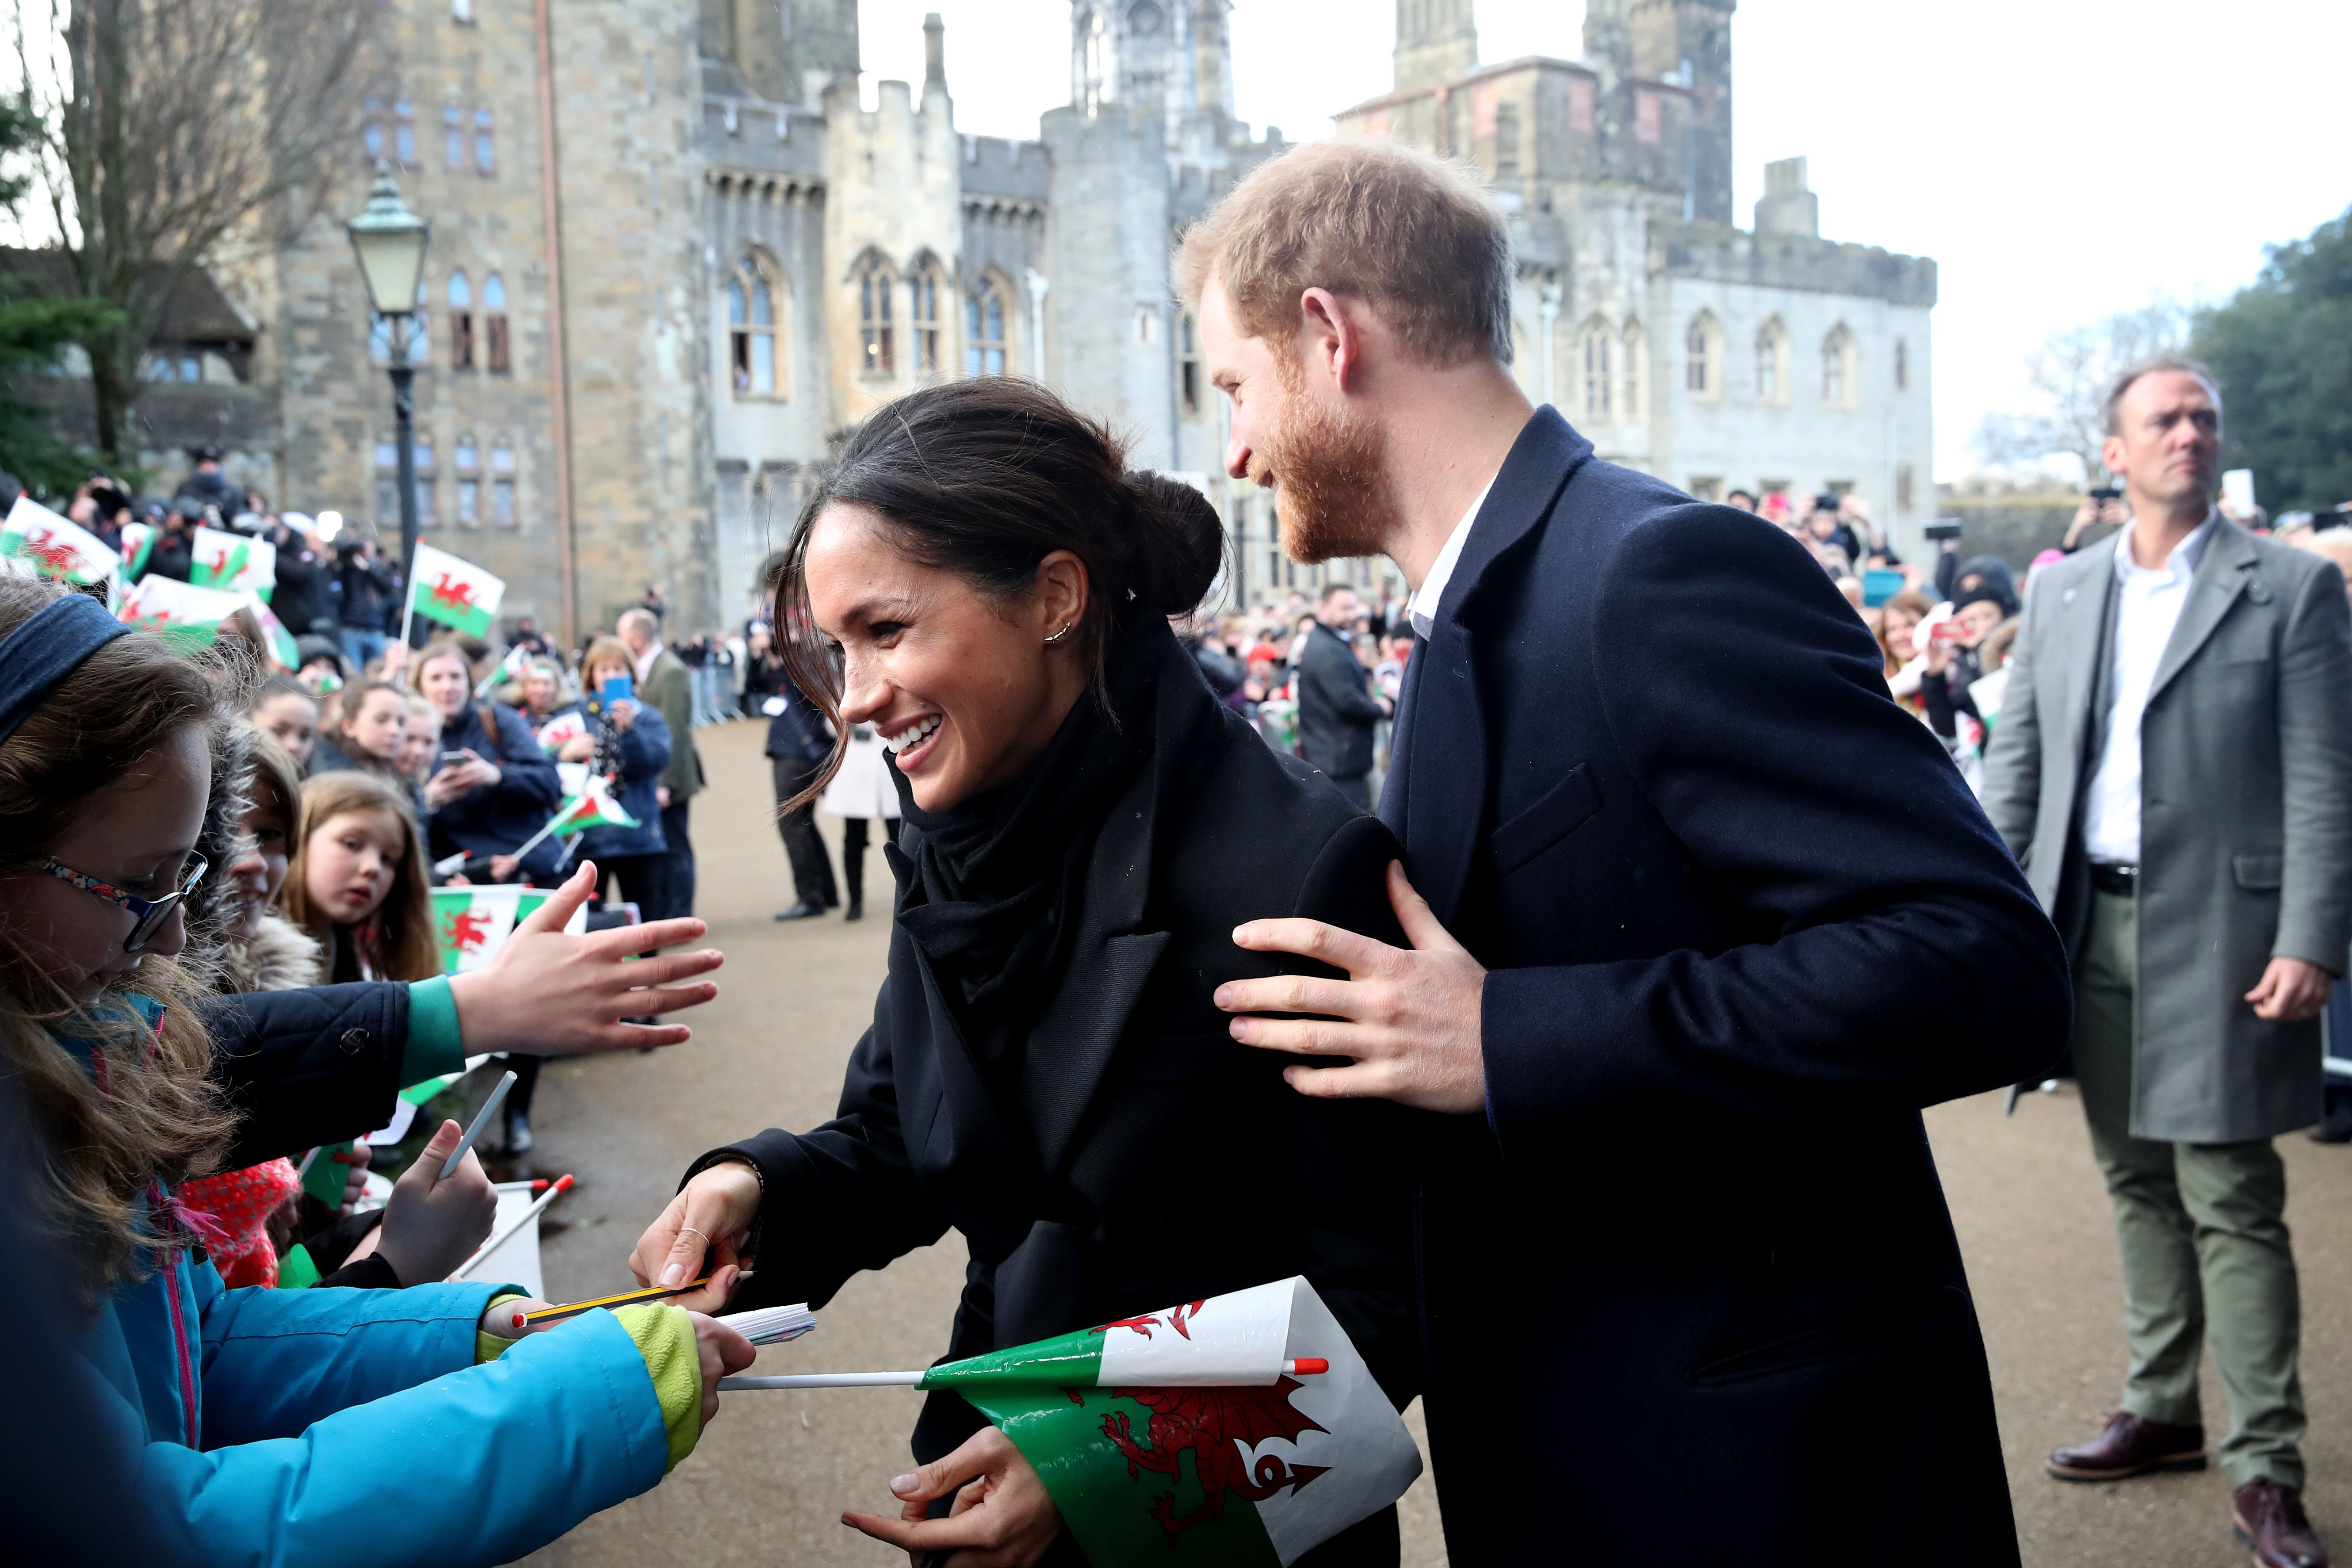 Prince Harry and Meghan Markle greeting crowds during an engagement